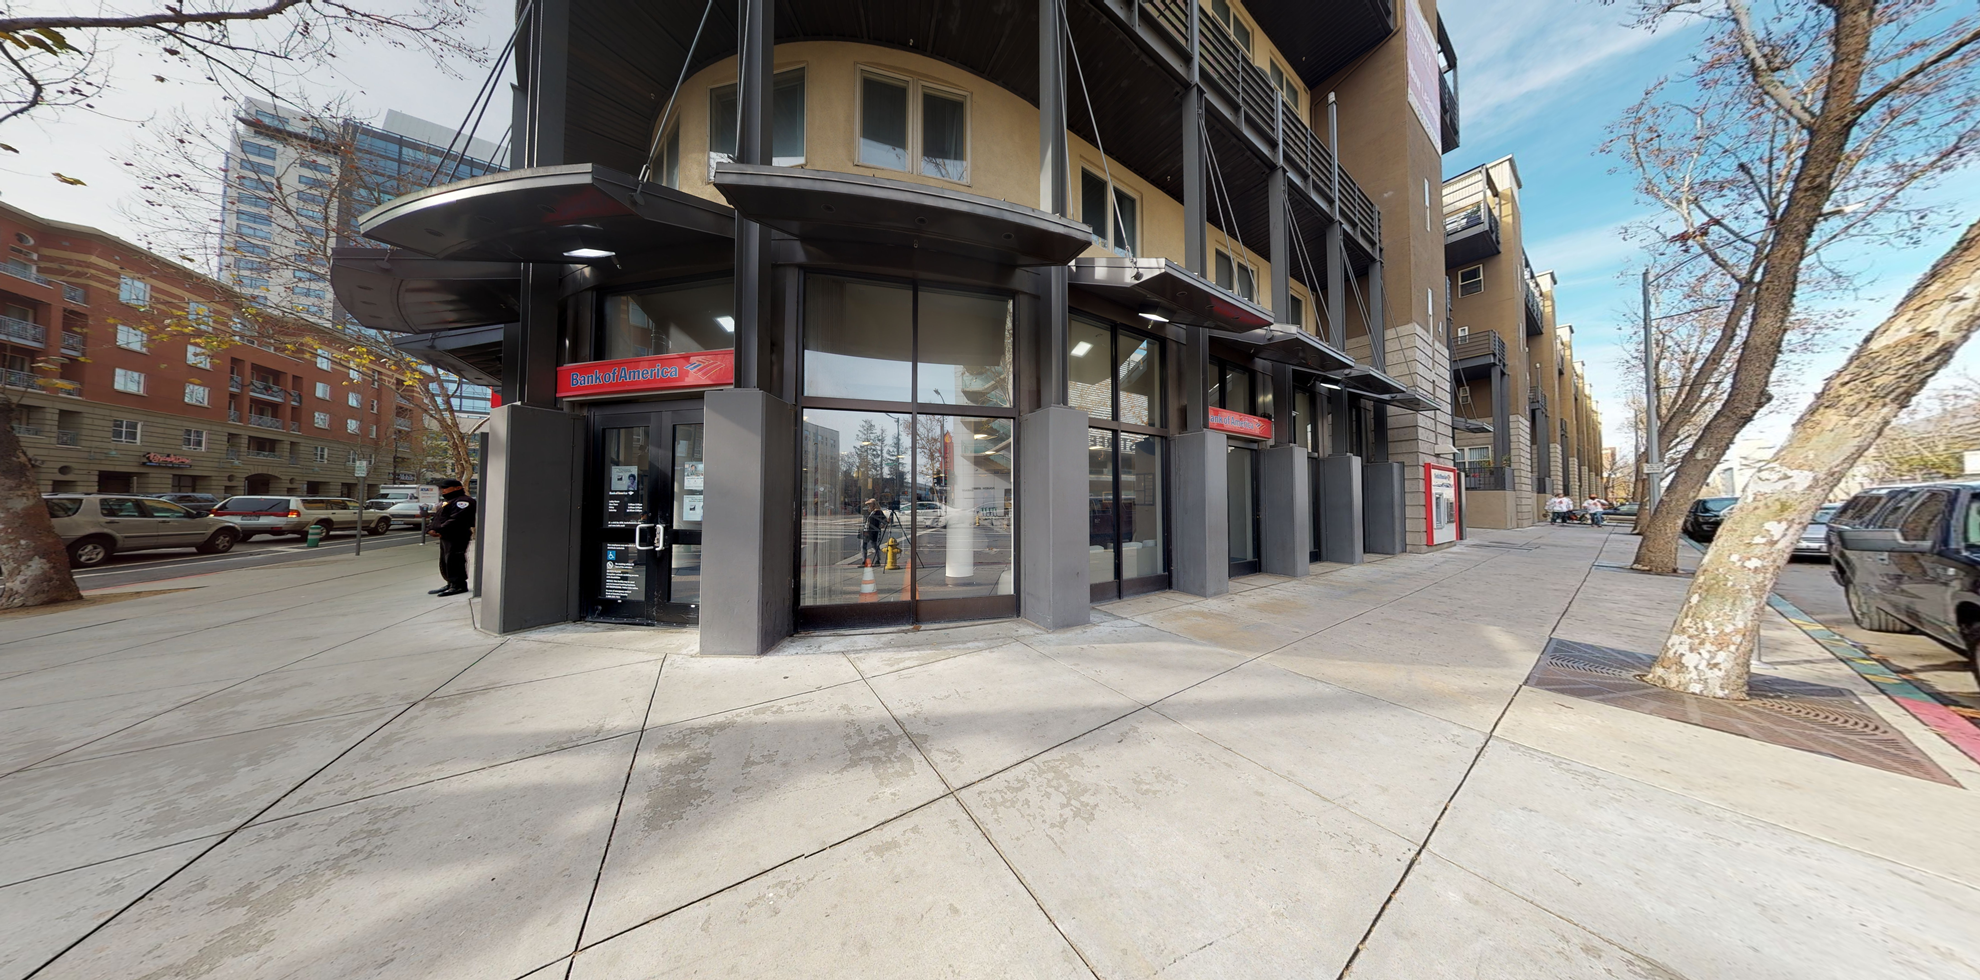 Bank of America financial center with walk-up ATM | 99 S 4th St, San Jose, CA 95112